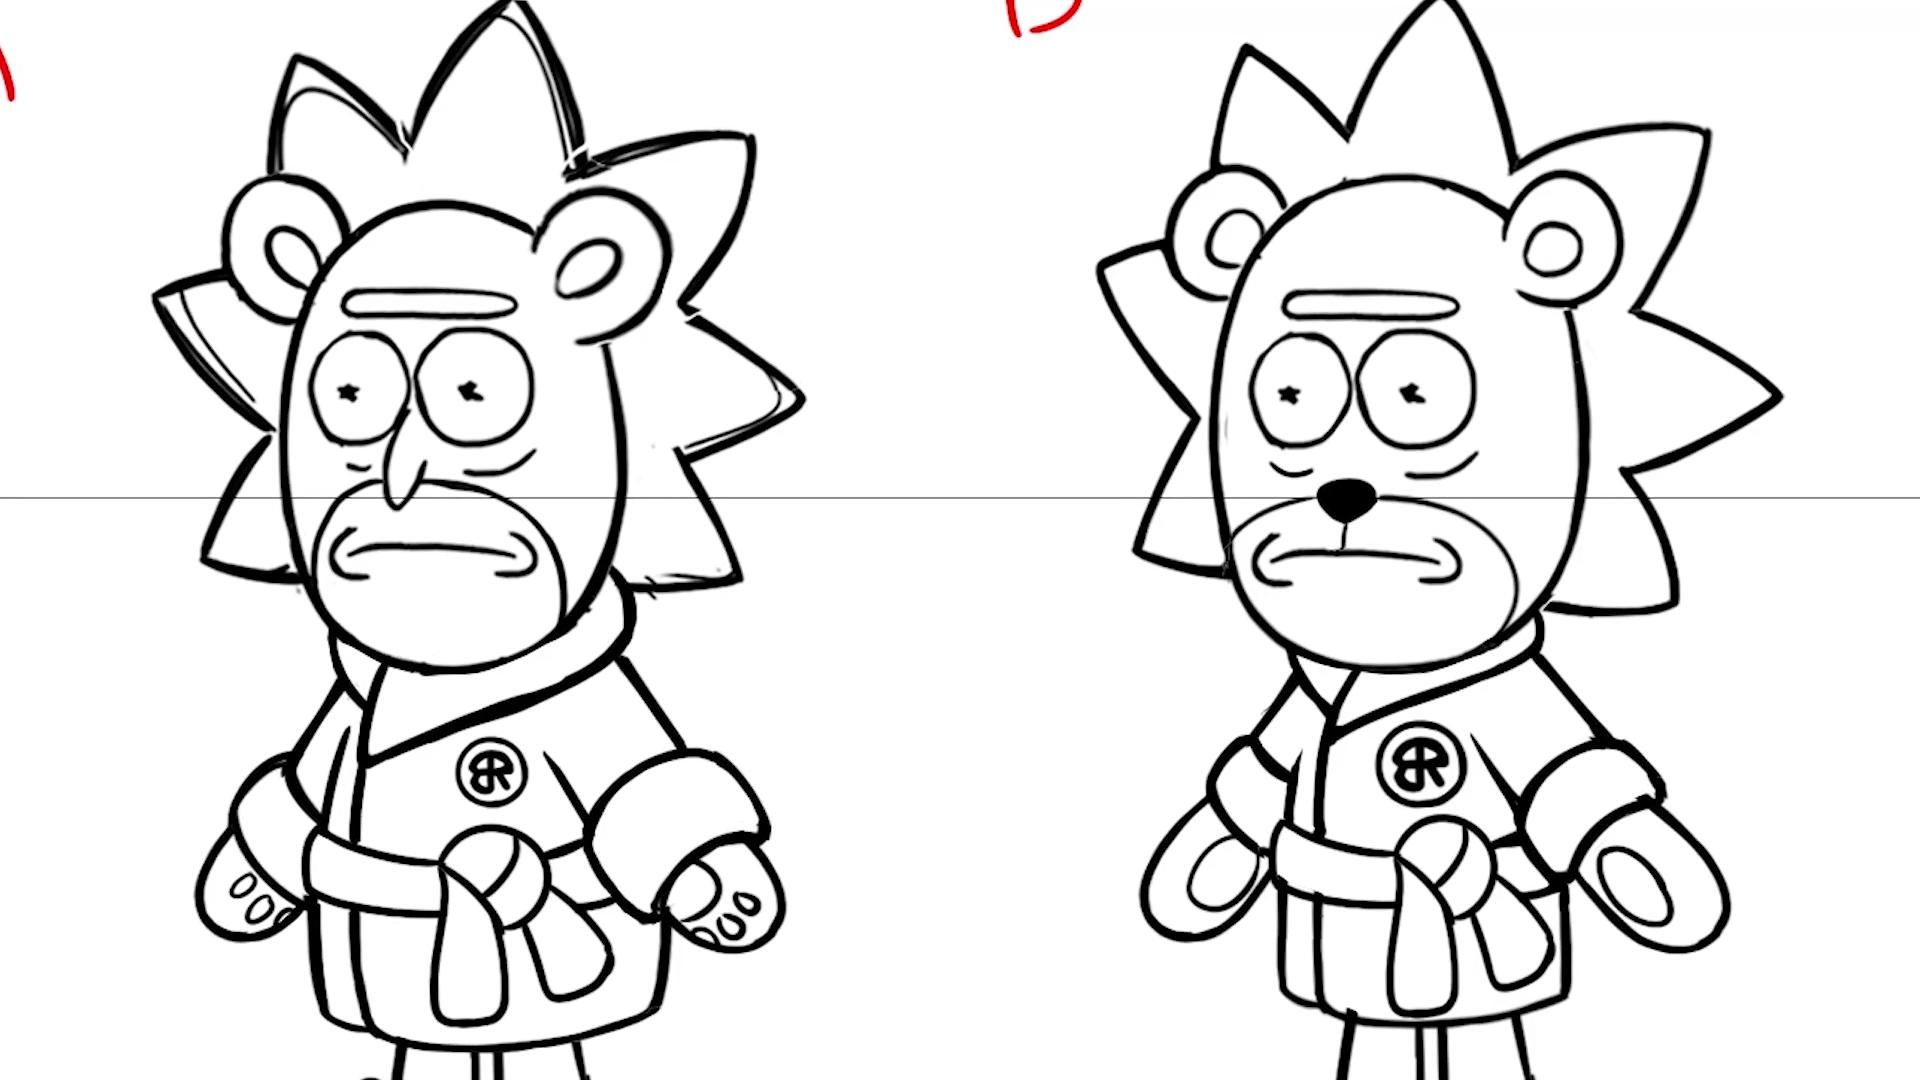 Rick and Morty: Character Creation Secrets